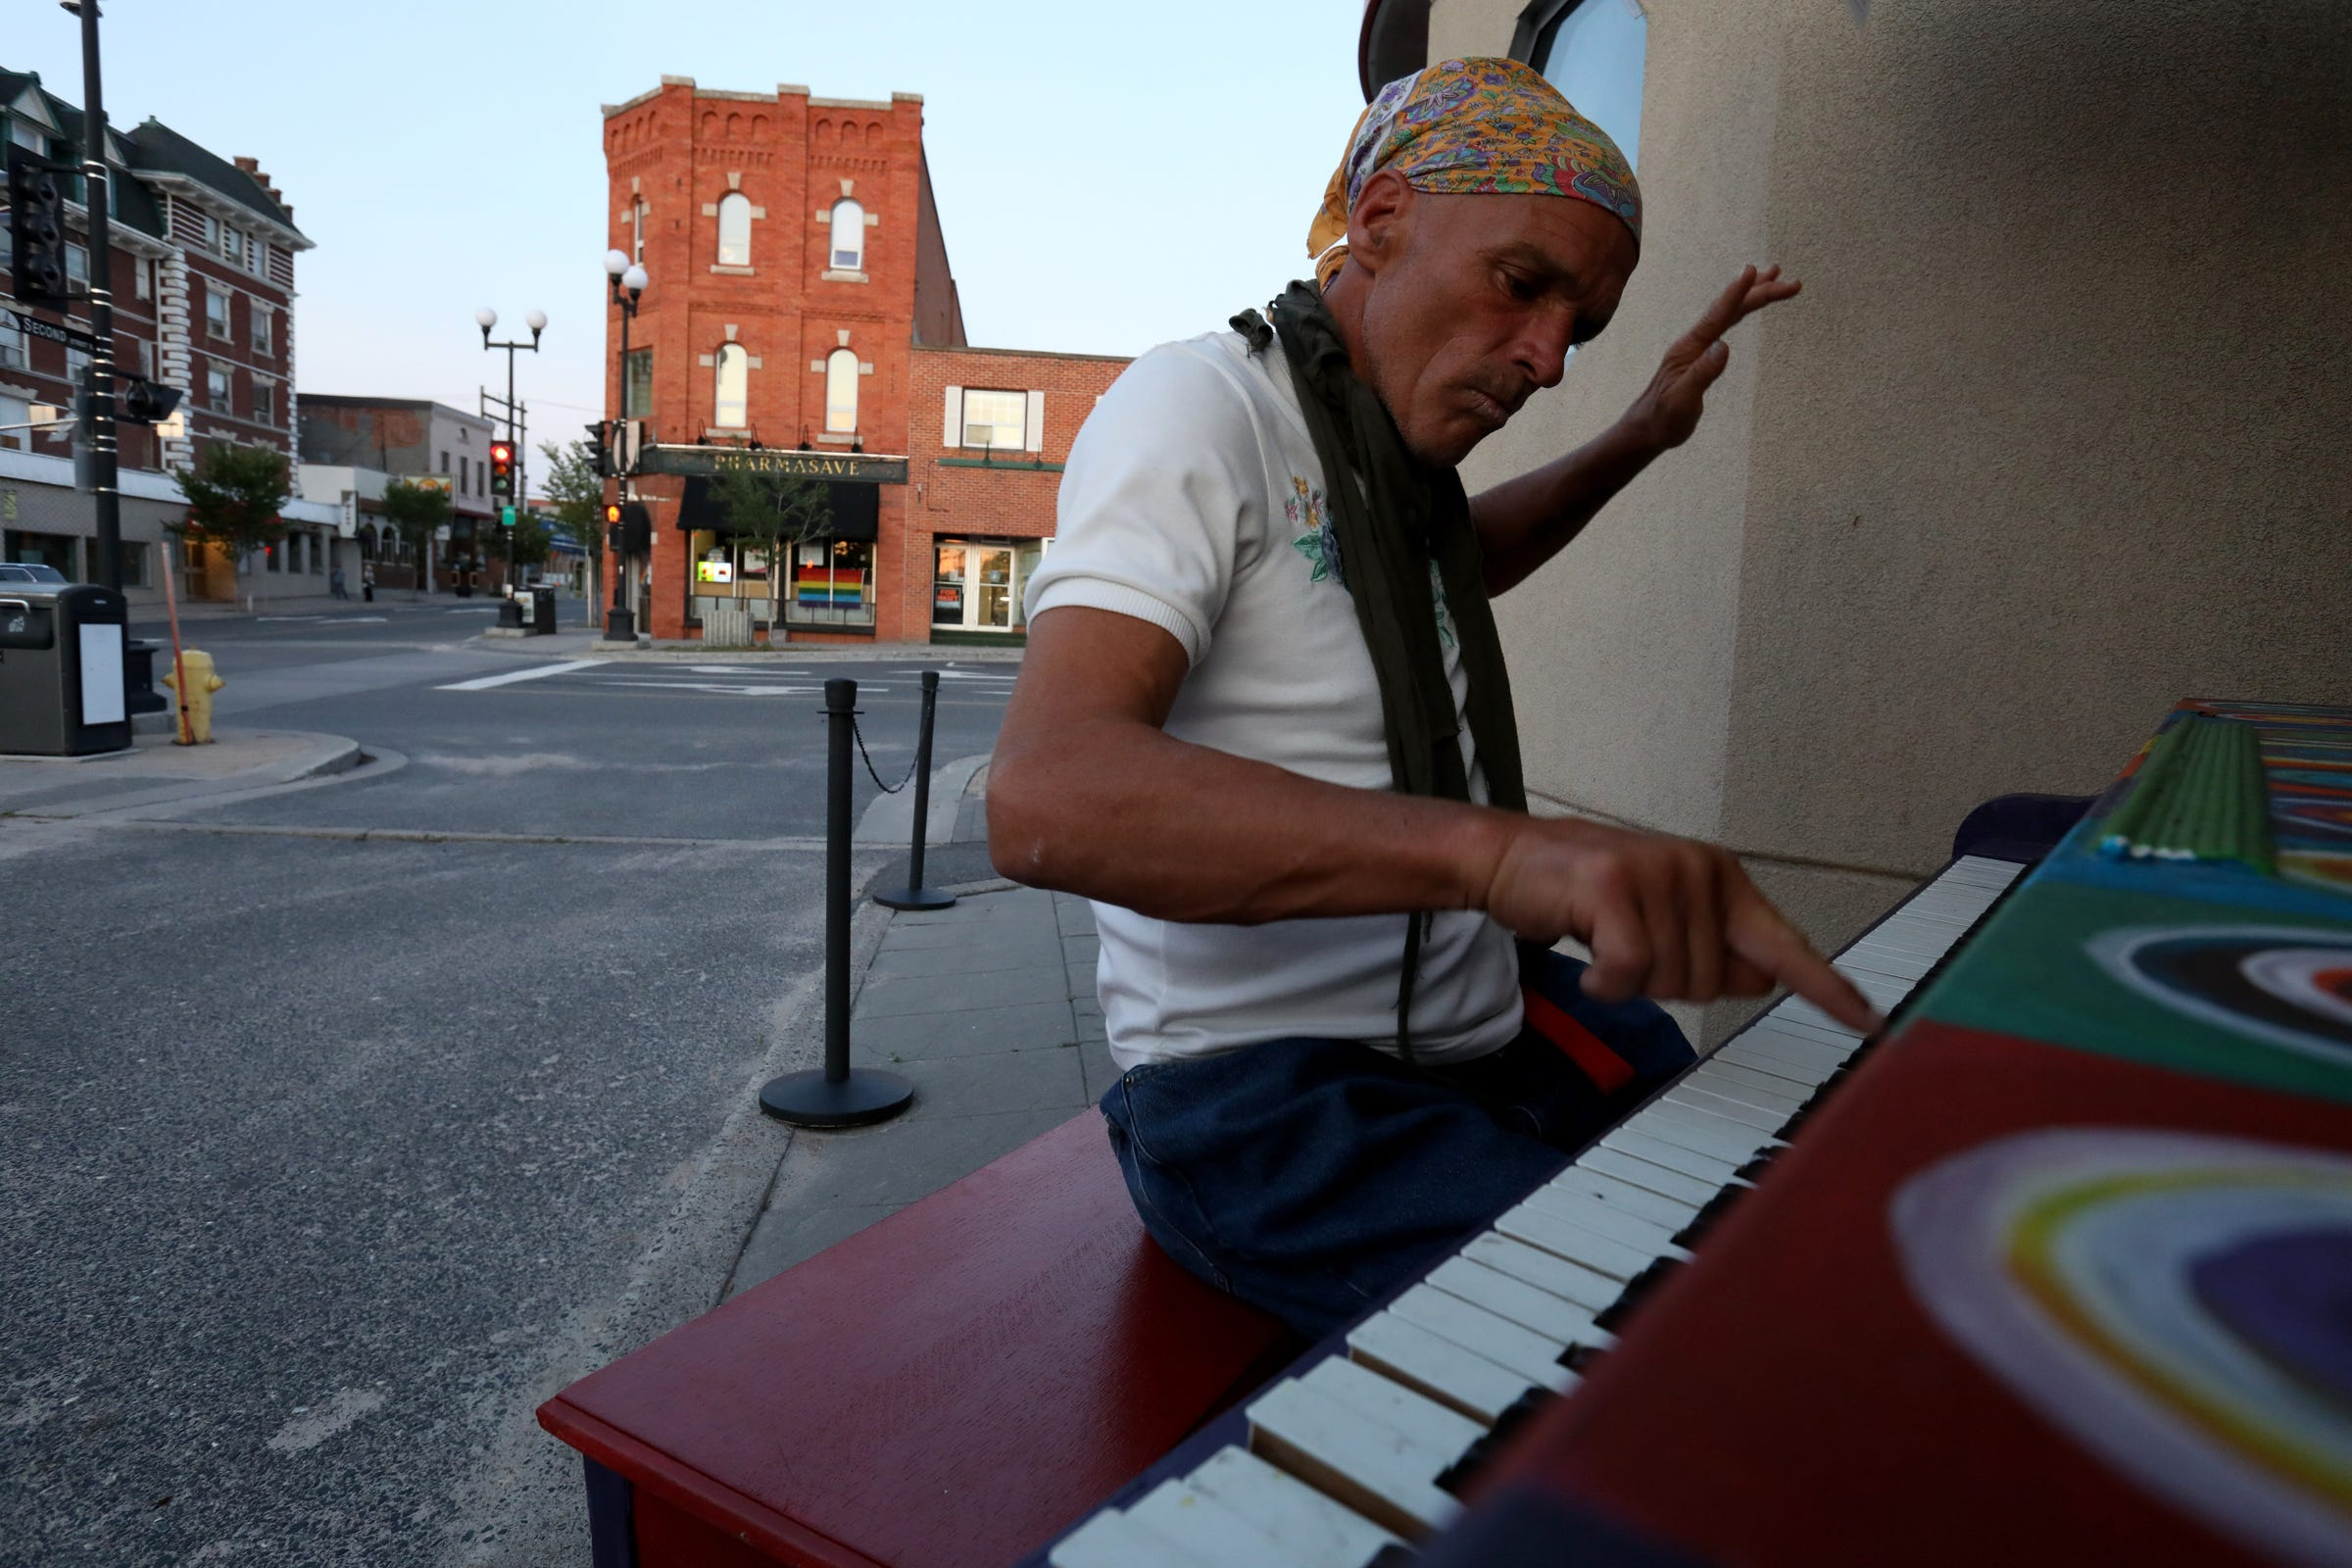 Out and about at dusk on Wednesday, July 10, 2019 in Kenora, Ontario, Canada, Joe Murphy plays piano at one of the few piano art installations around the town.After living in a hotel in Kenora, Ontario, Canada set up by former NHL hockey players, former Detroit Red Wings player Joe Murphy is back on the streets of that city and homeless. Murphy still wanders the town sleeping out in the open in different places, getting food and clothing from the Fellowship Centre that helps the homeless population in Kenora.